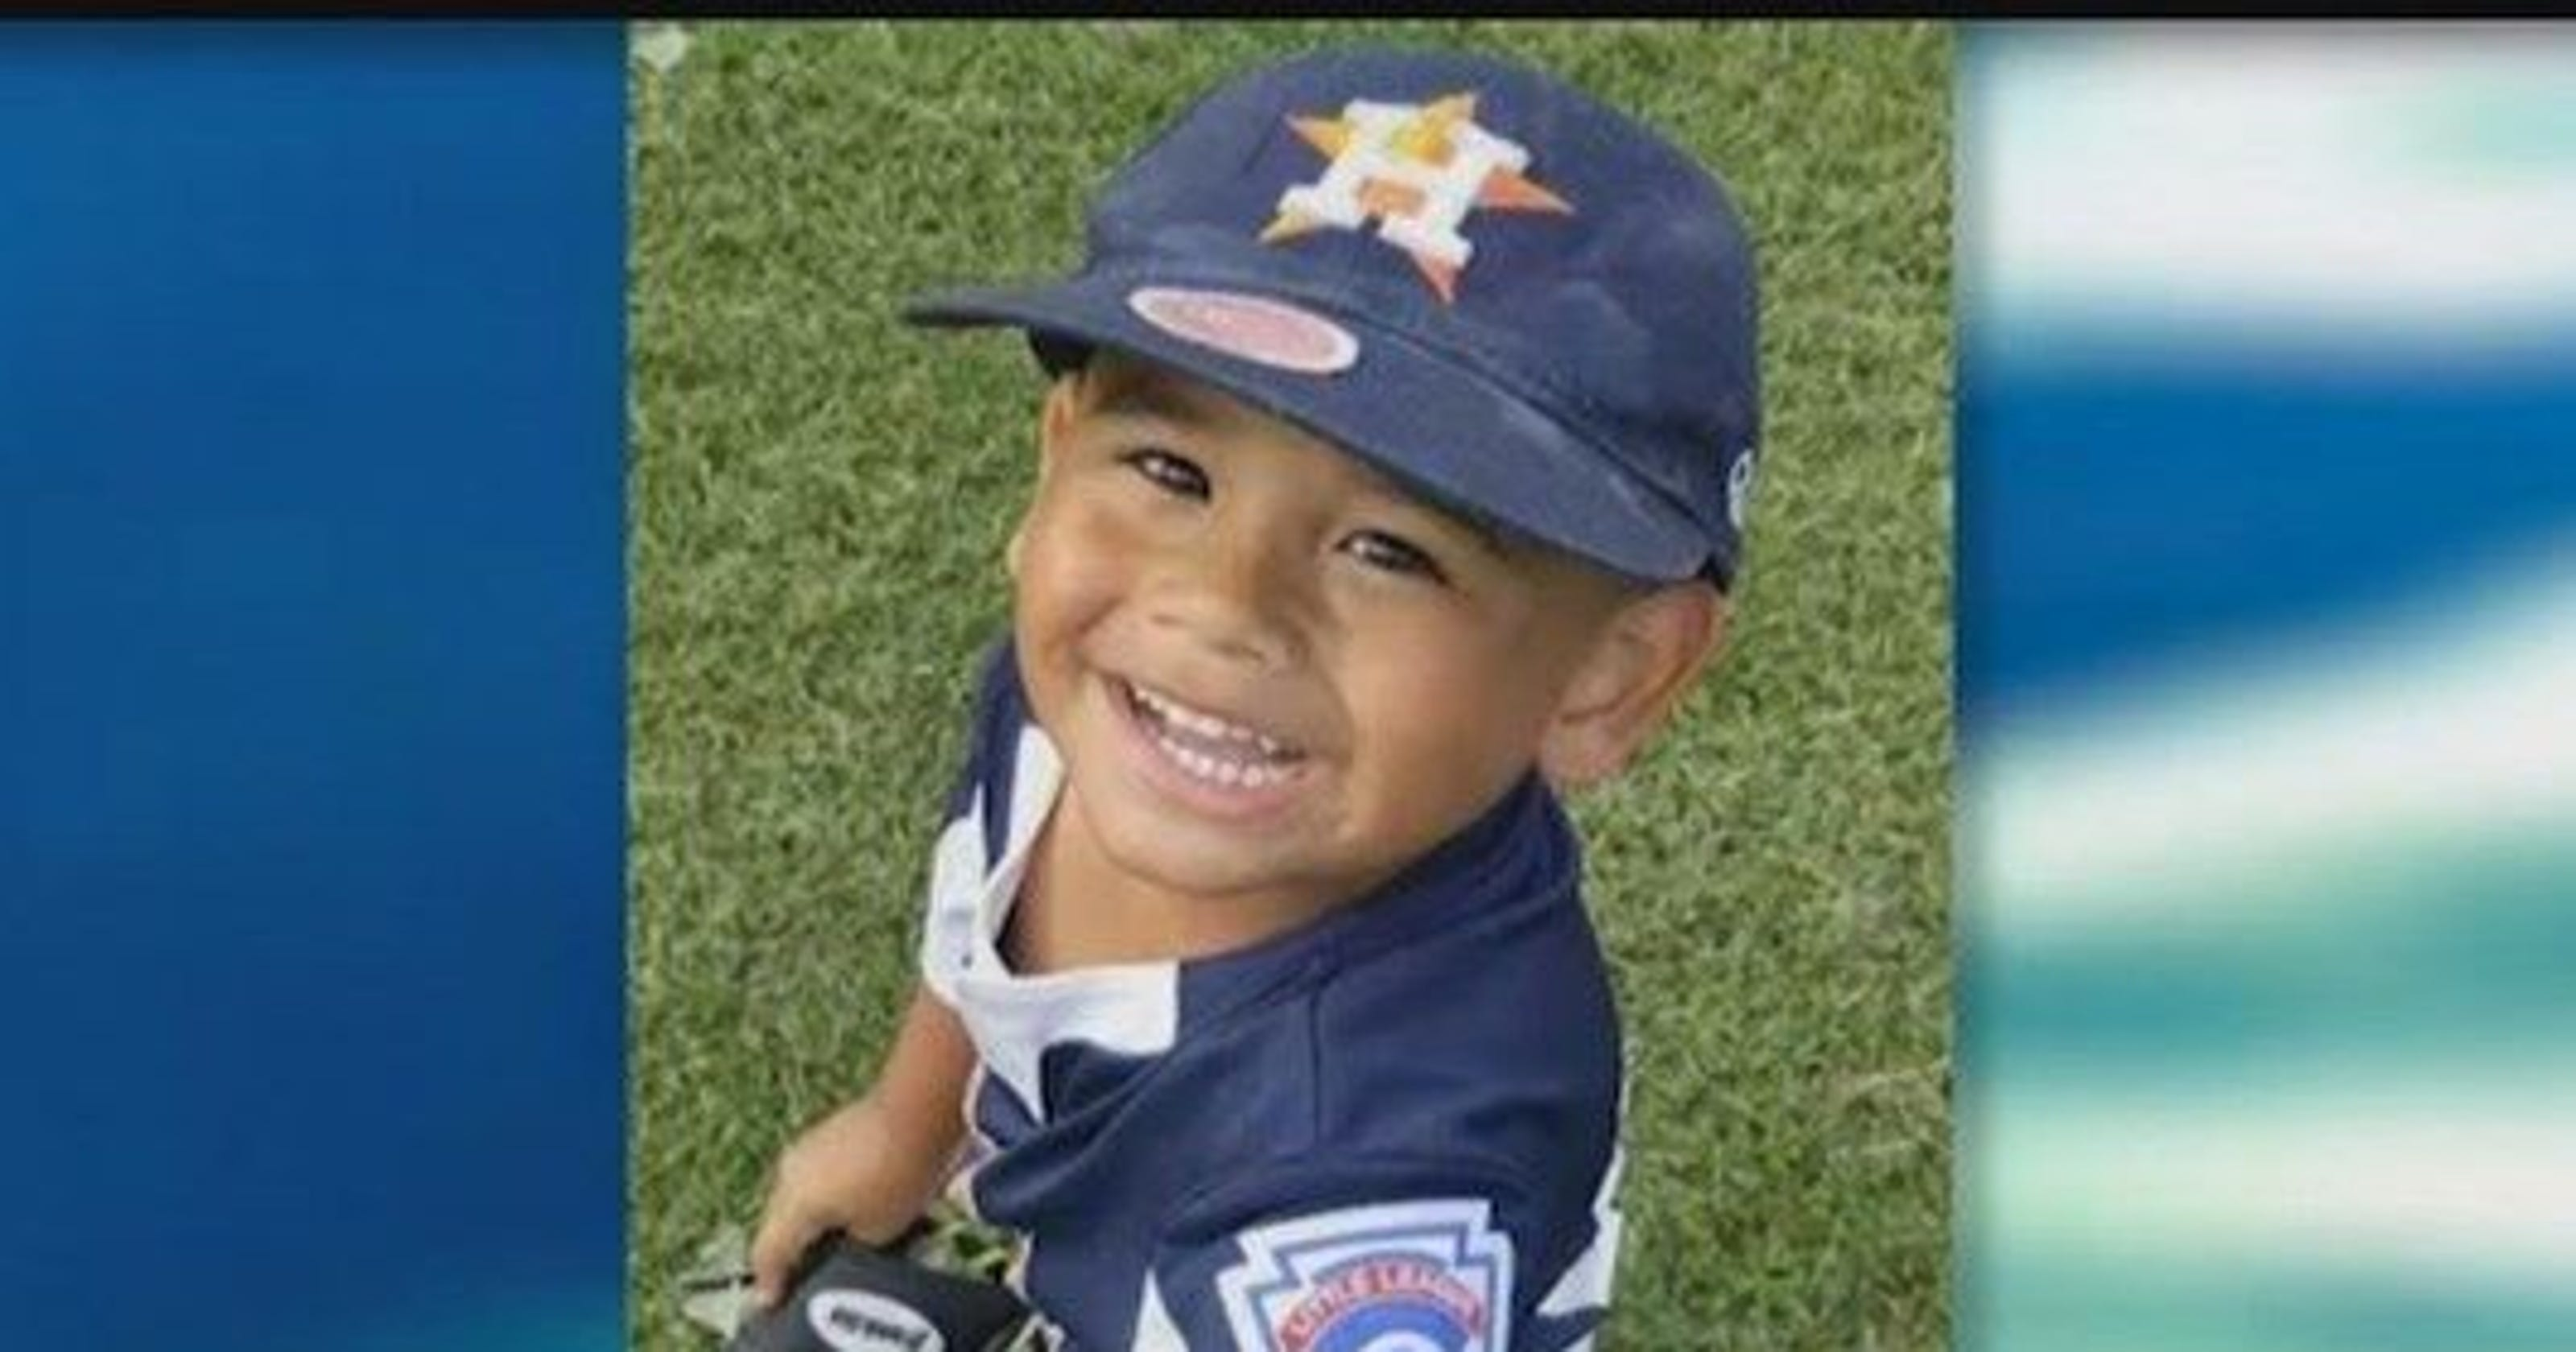 Texas boy dies from 'dry drowning' days after swimming